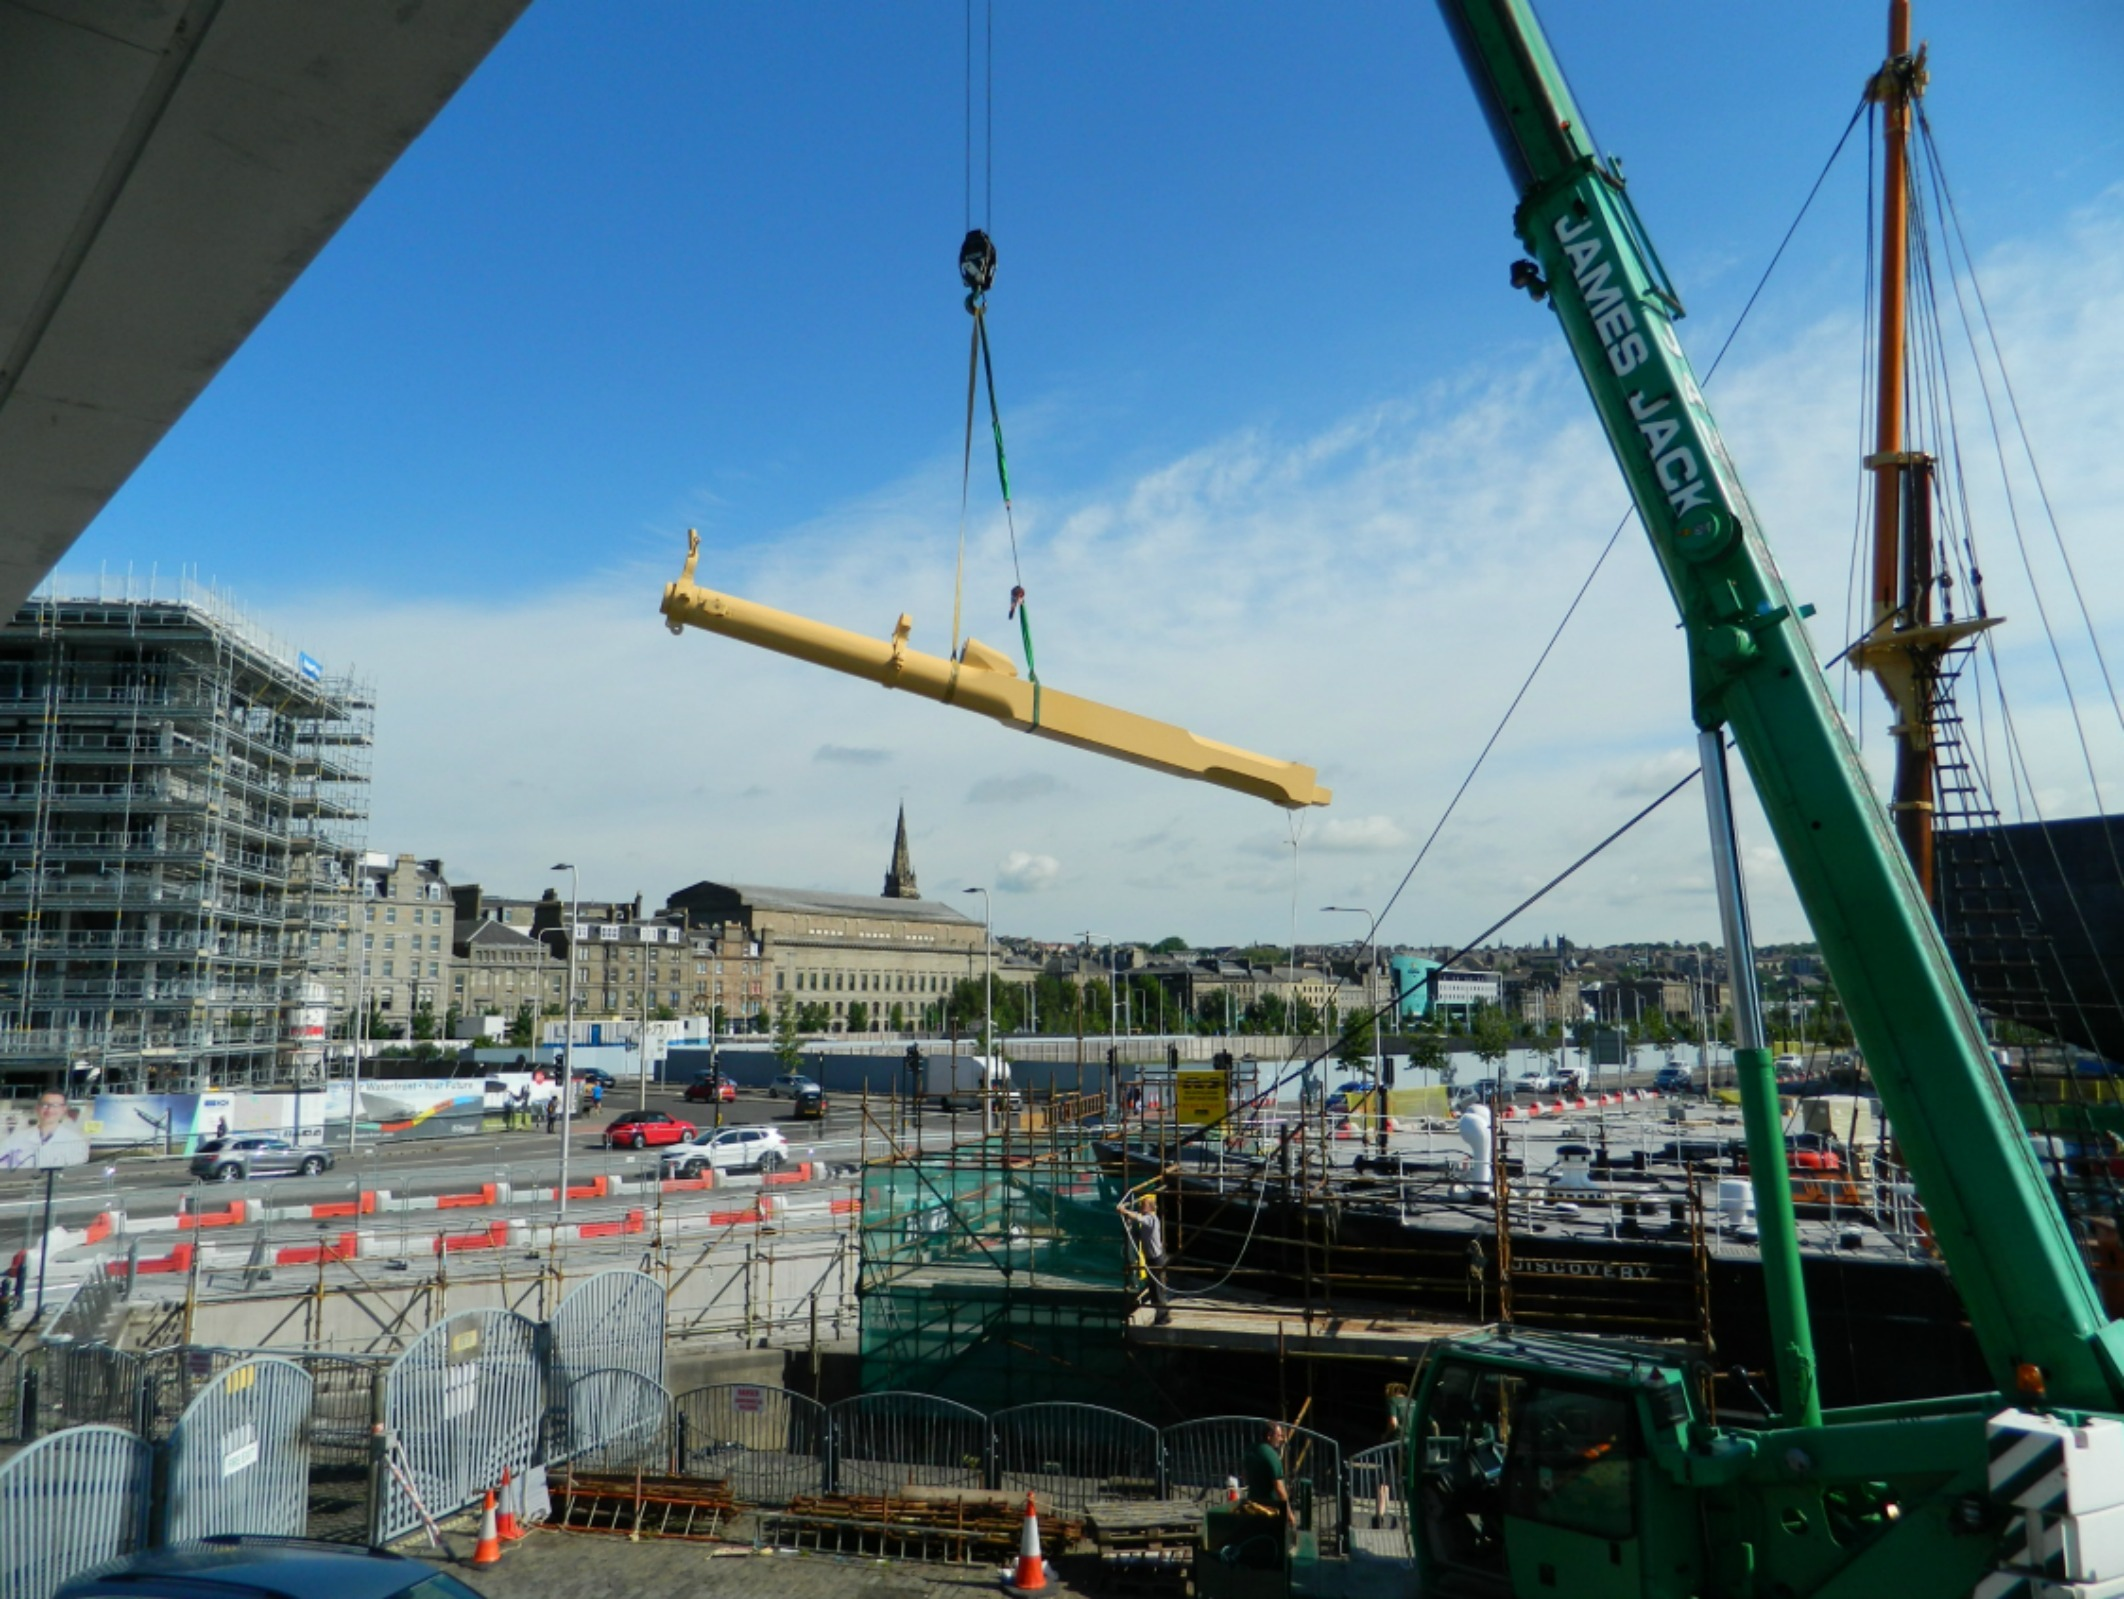 The ship's masts were taken down in November for essential conservation work